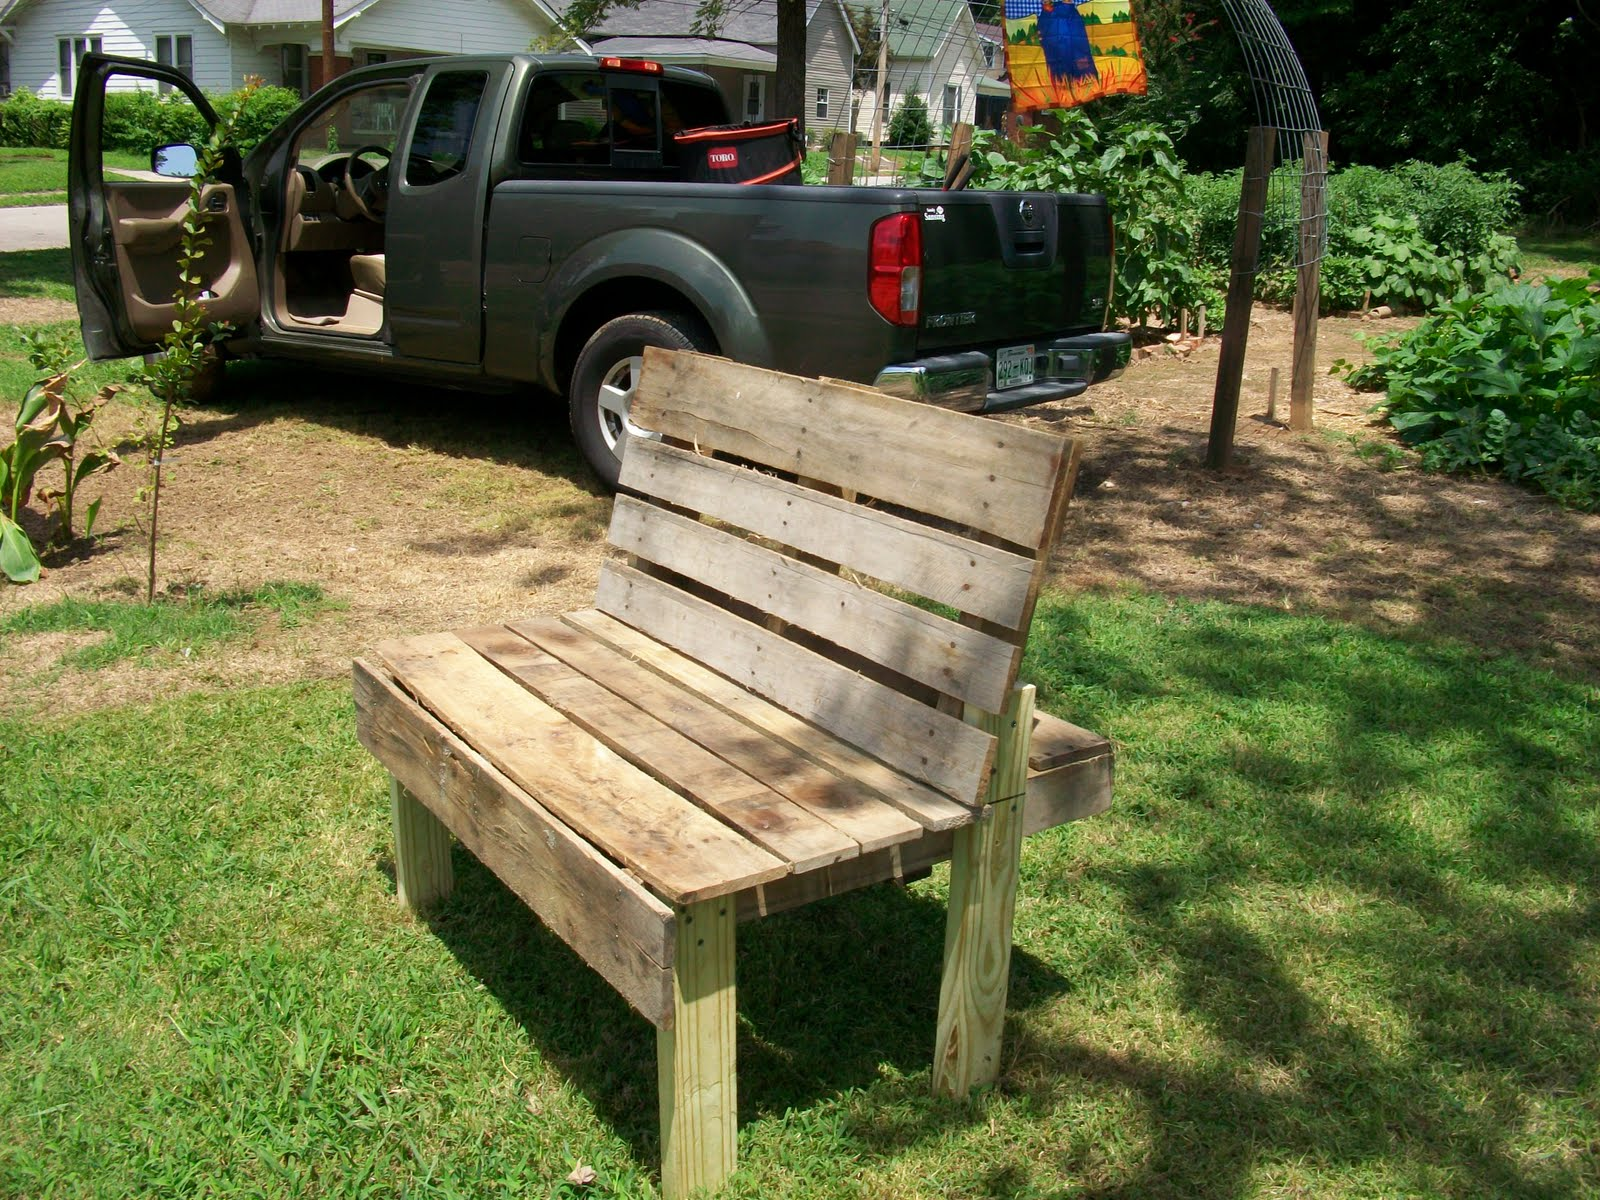 Garden daddy recycled pallet becomes garden bench for Banc en bois de palette